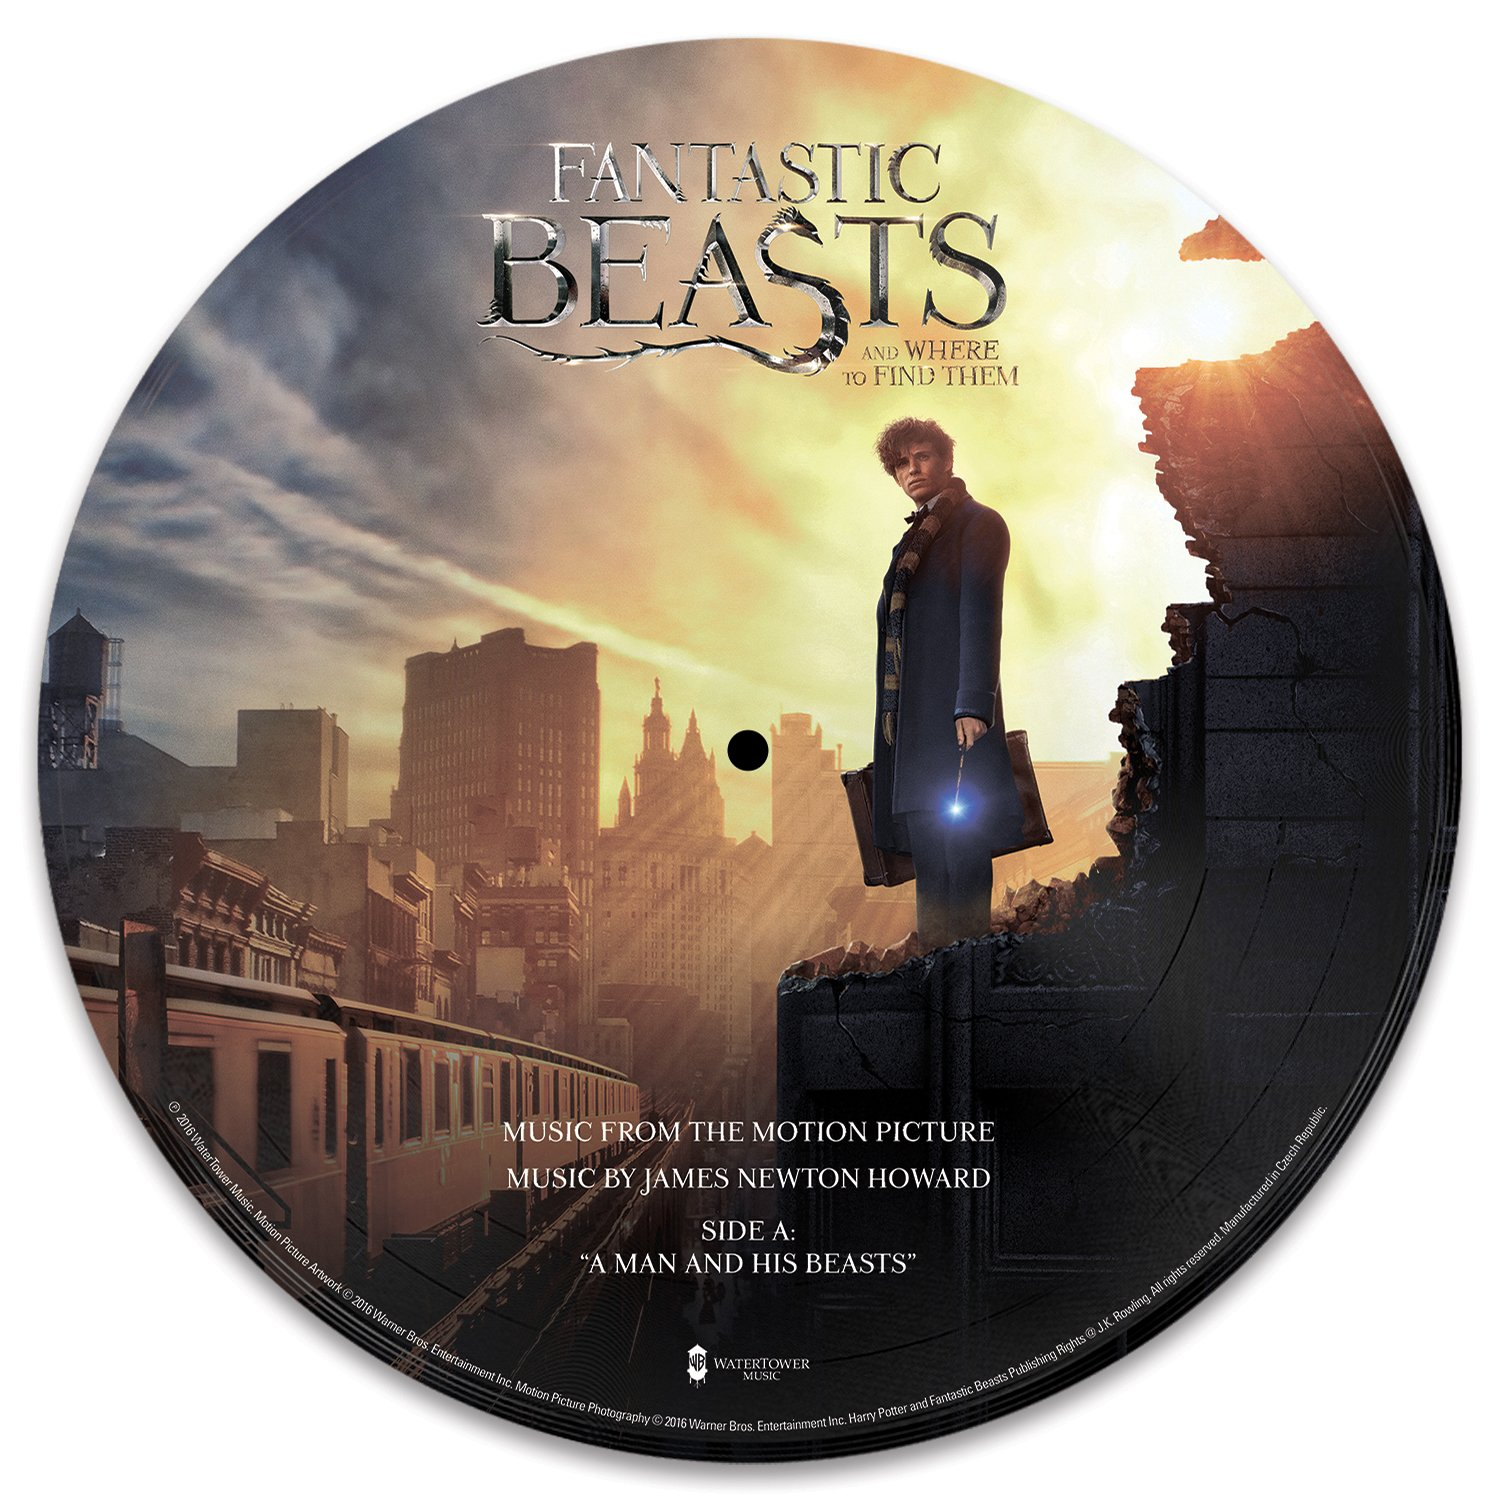 Full Track List For The Fantastic Beasts And Where To Find